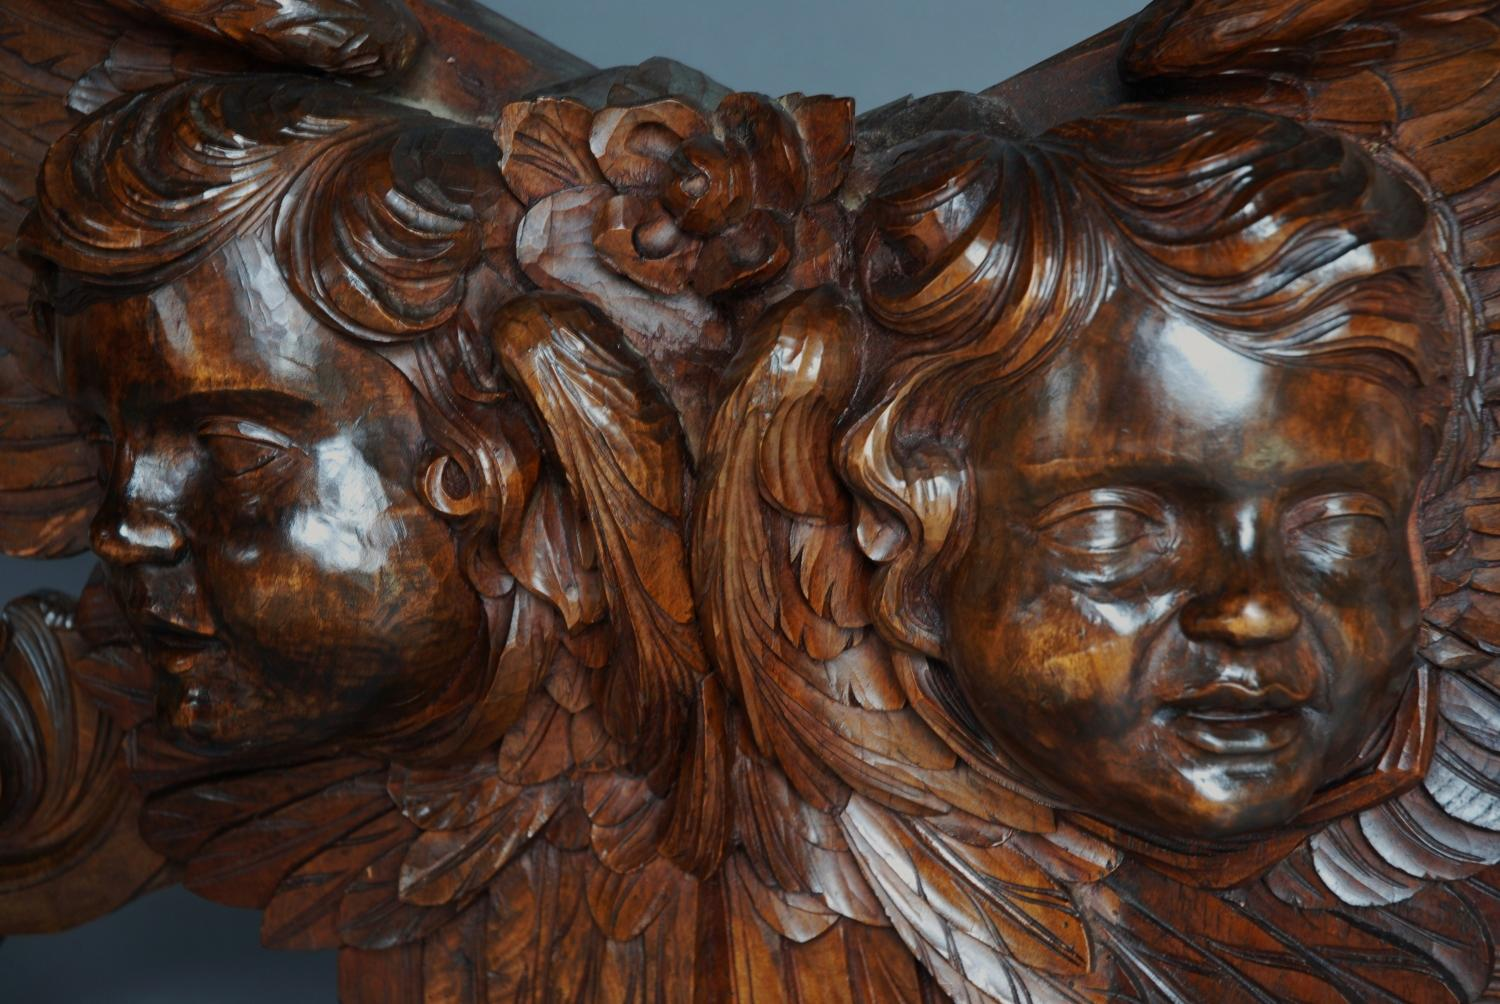 Mid 19thc Italian carved walnut wall carving